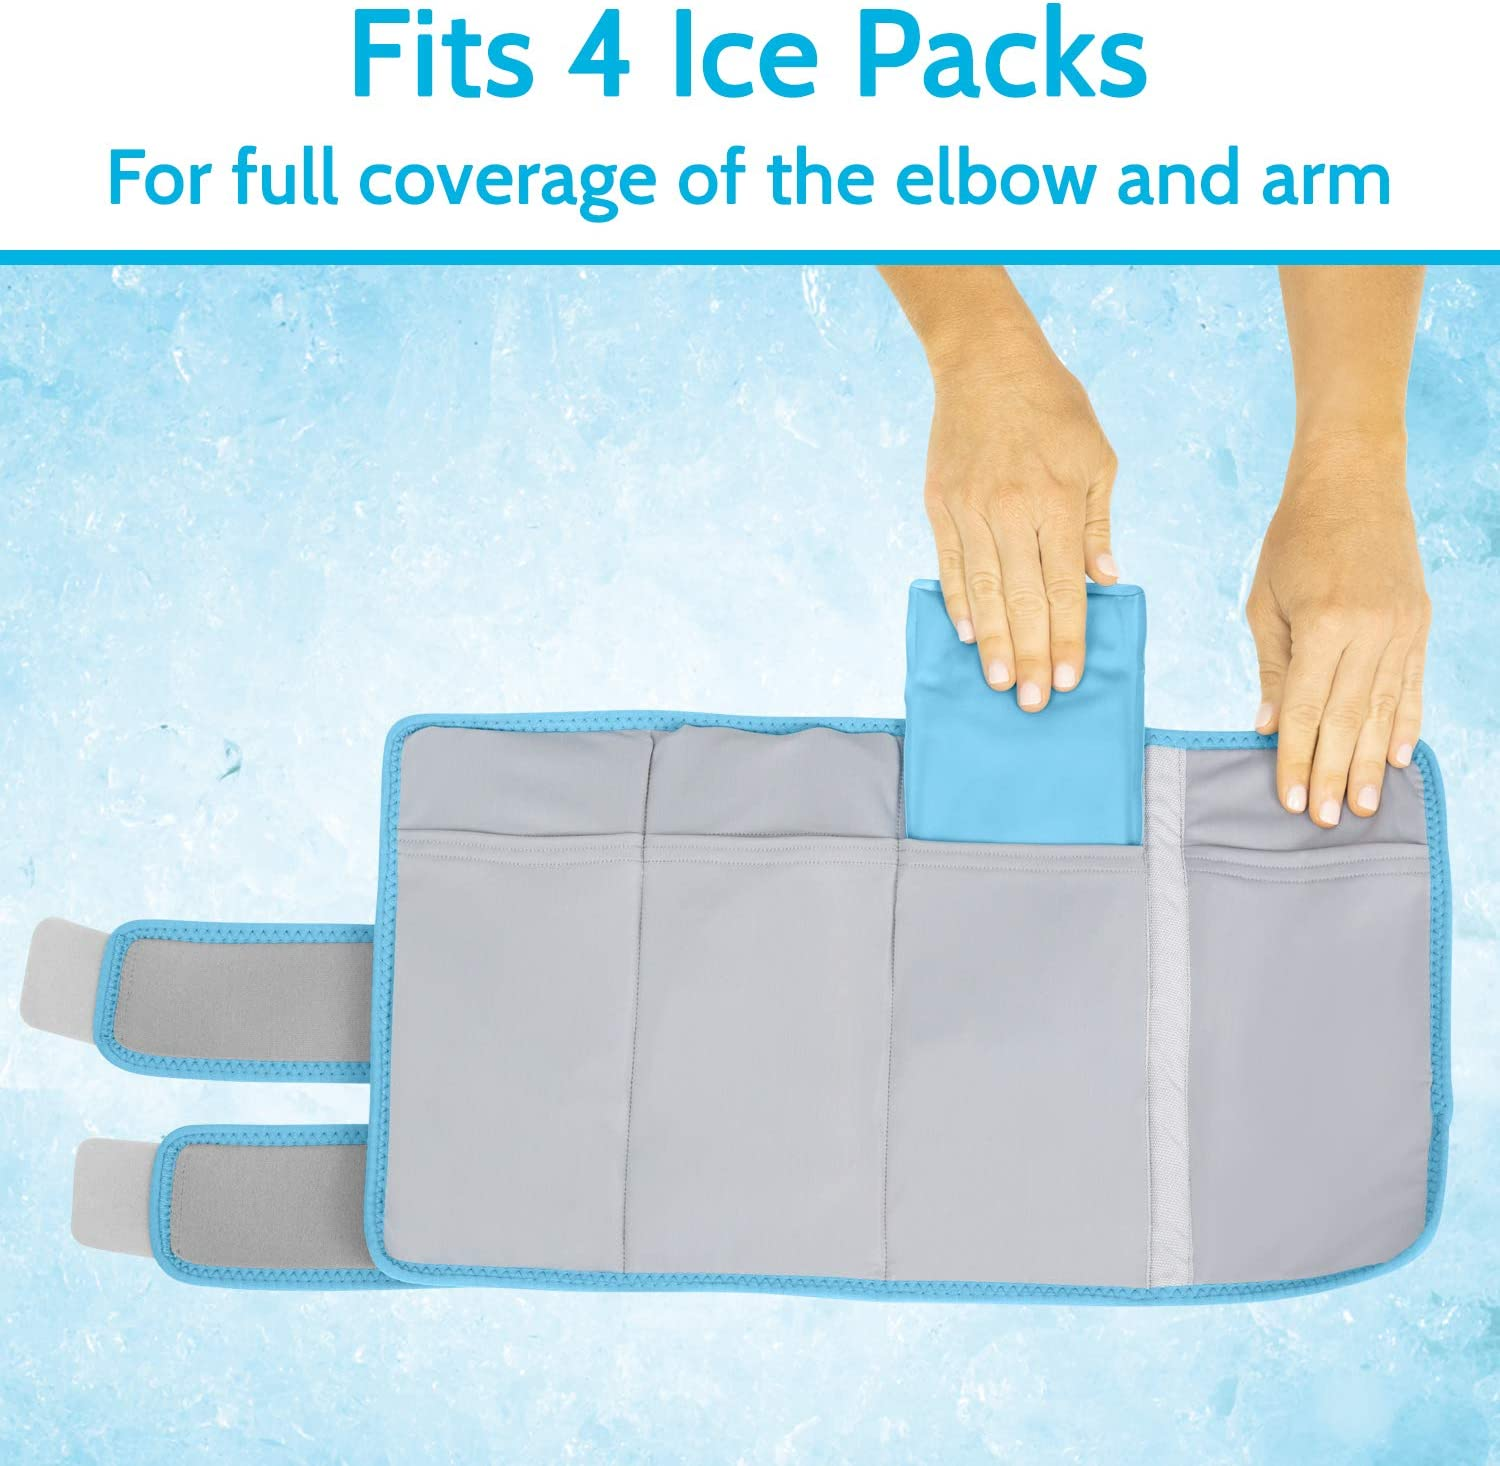 Vive Ice Pack for Elbow and arm